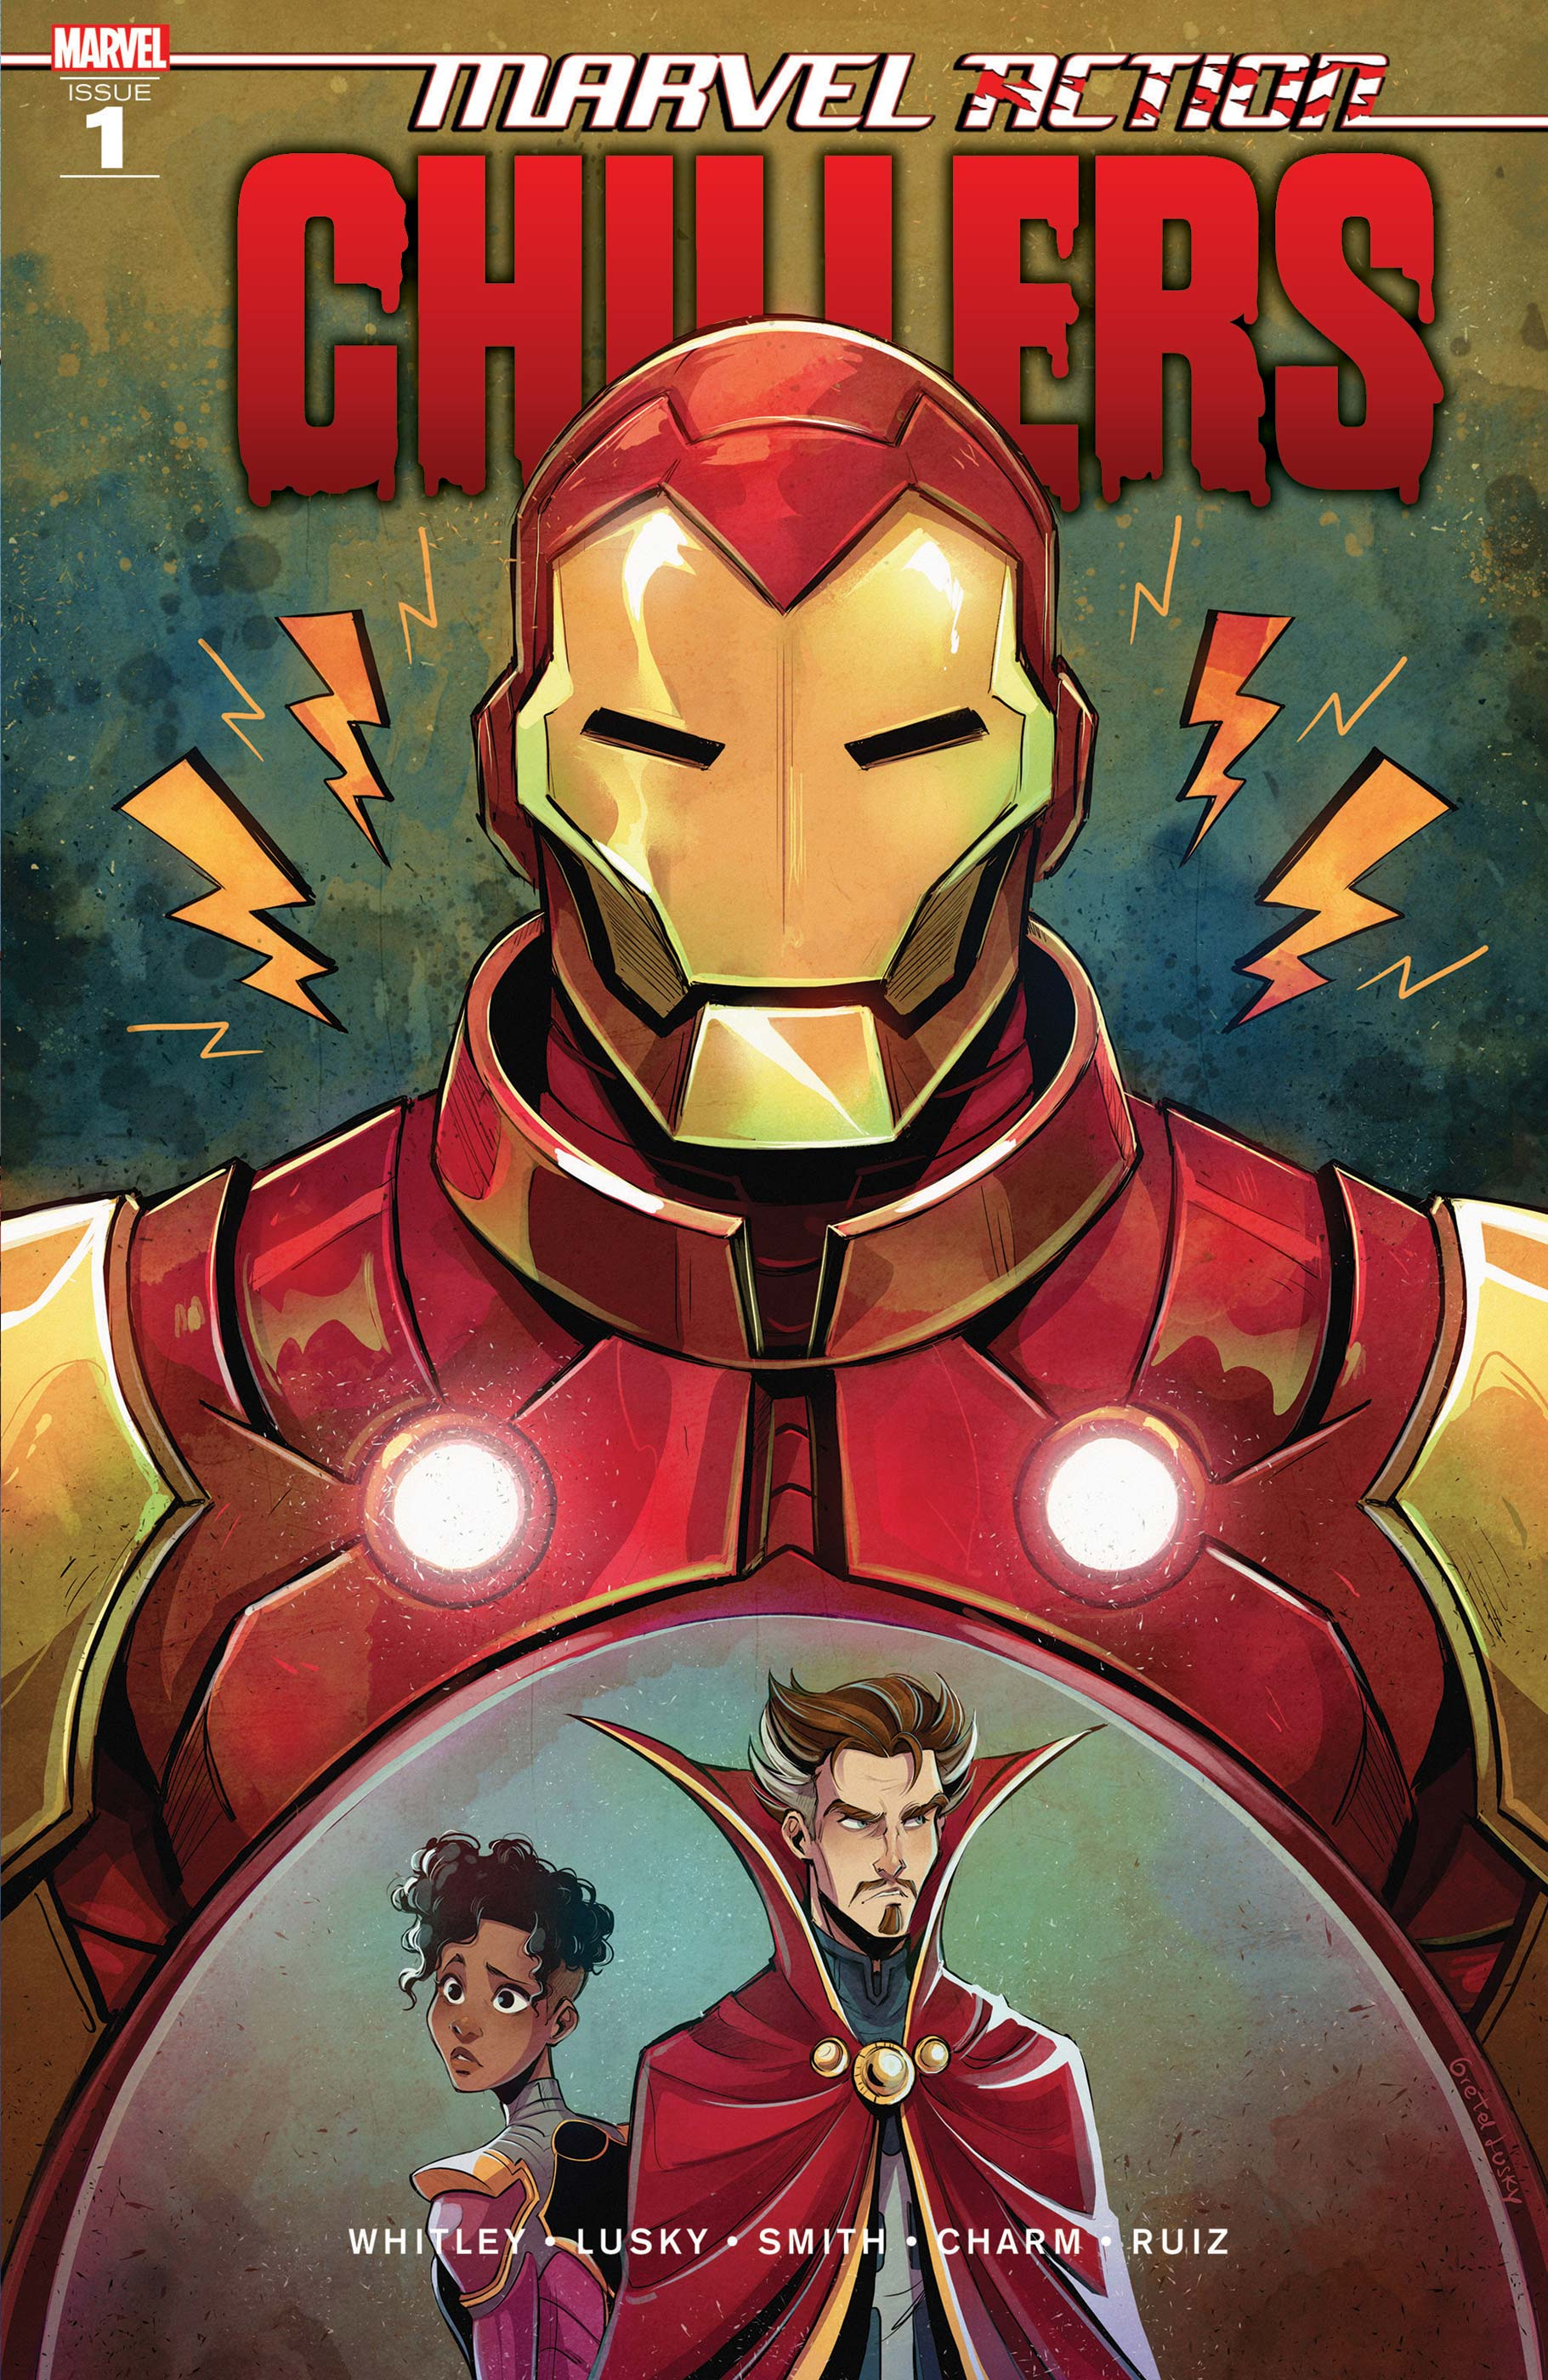 Marvel Action Chillers (2020) #1